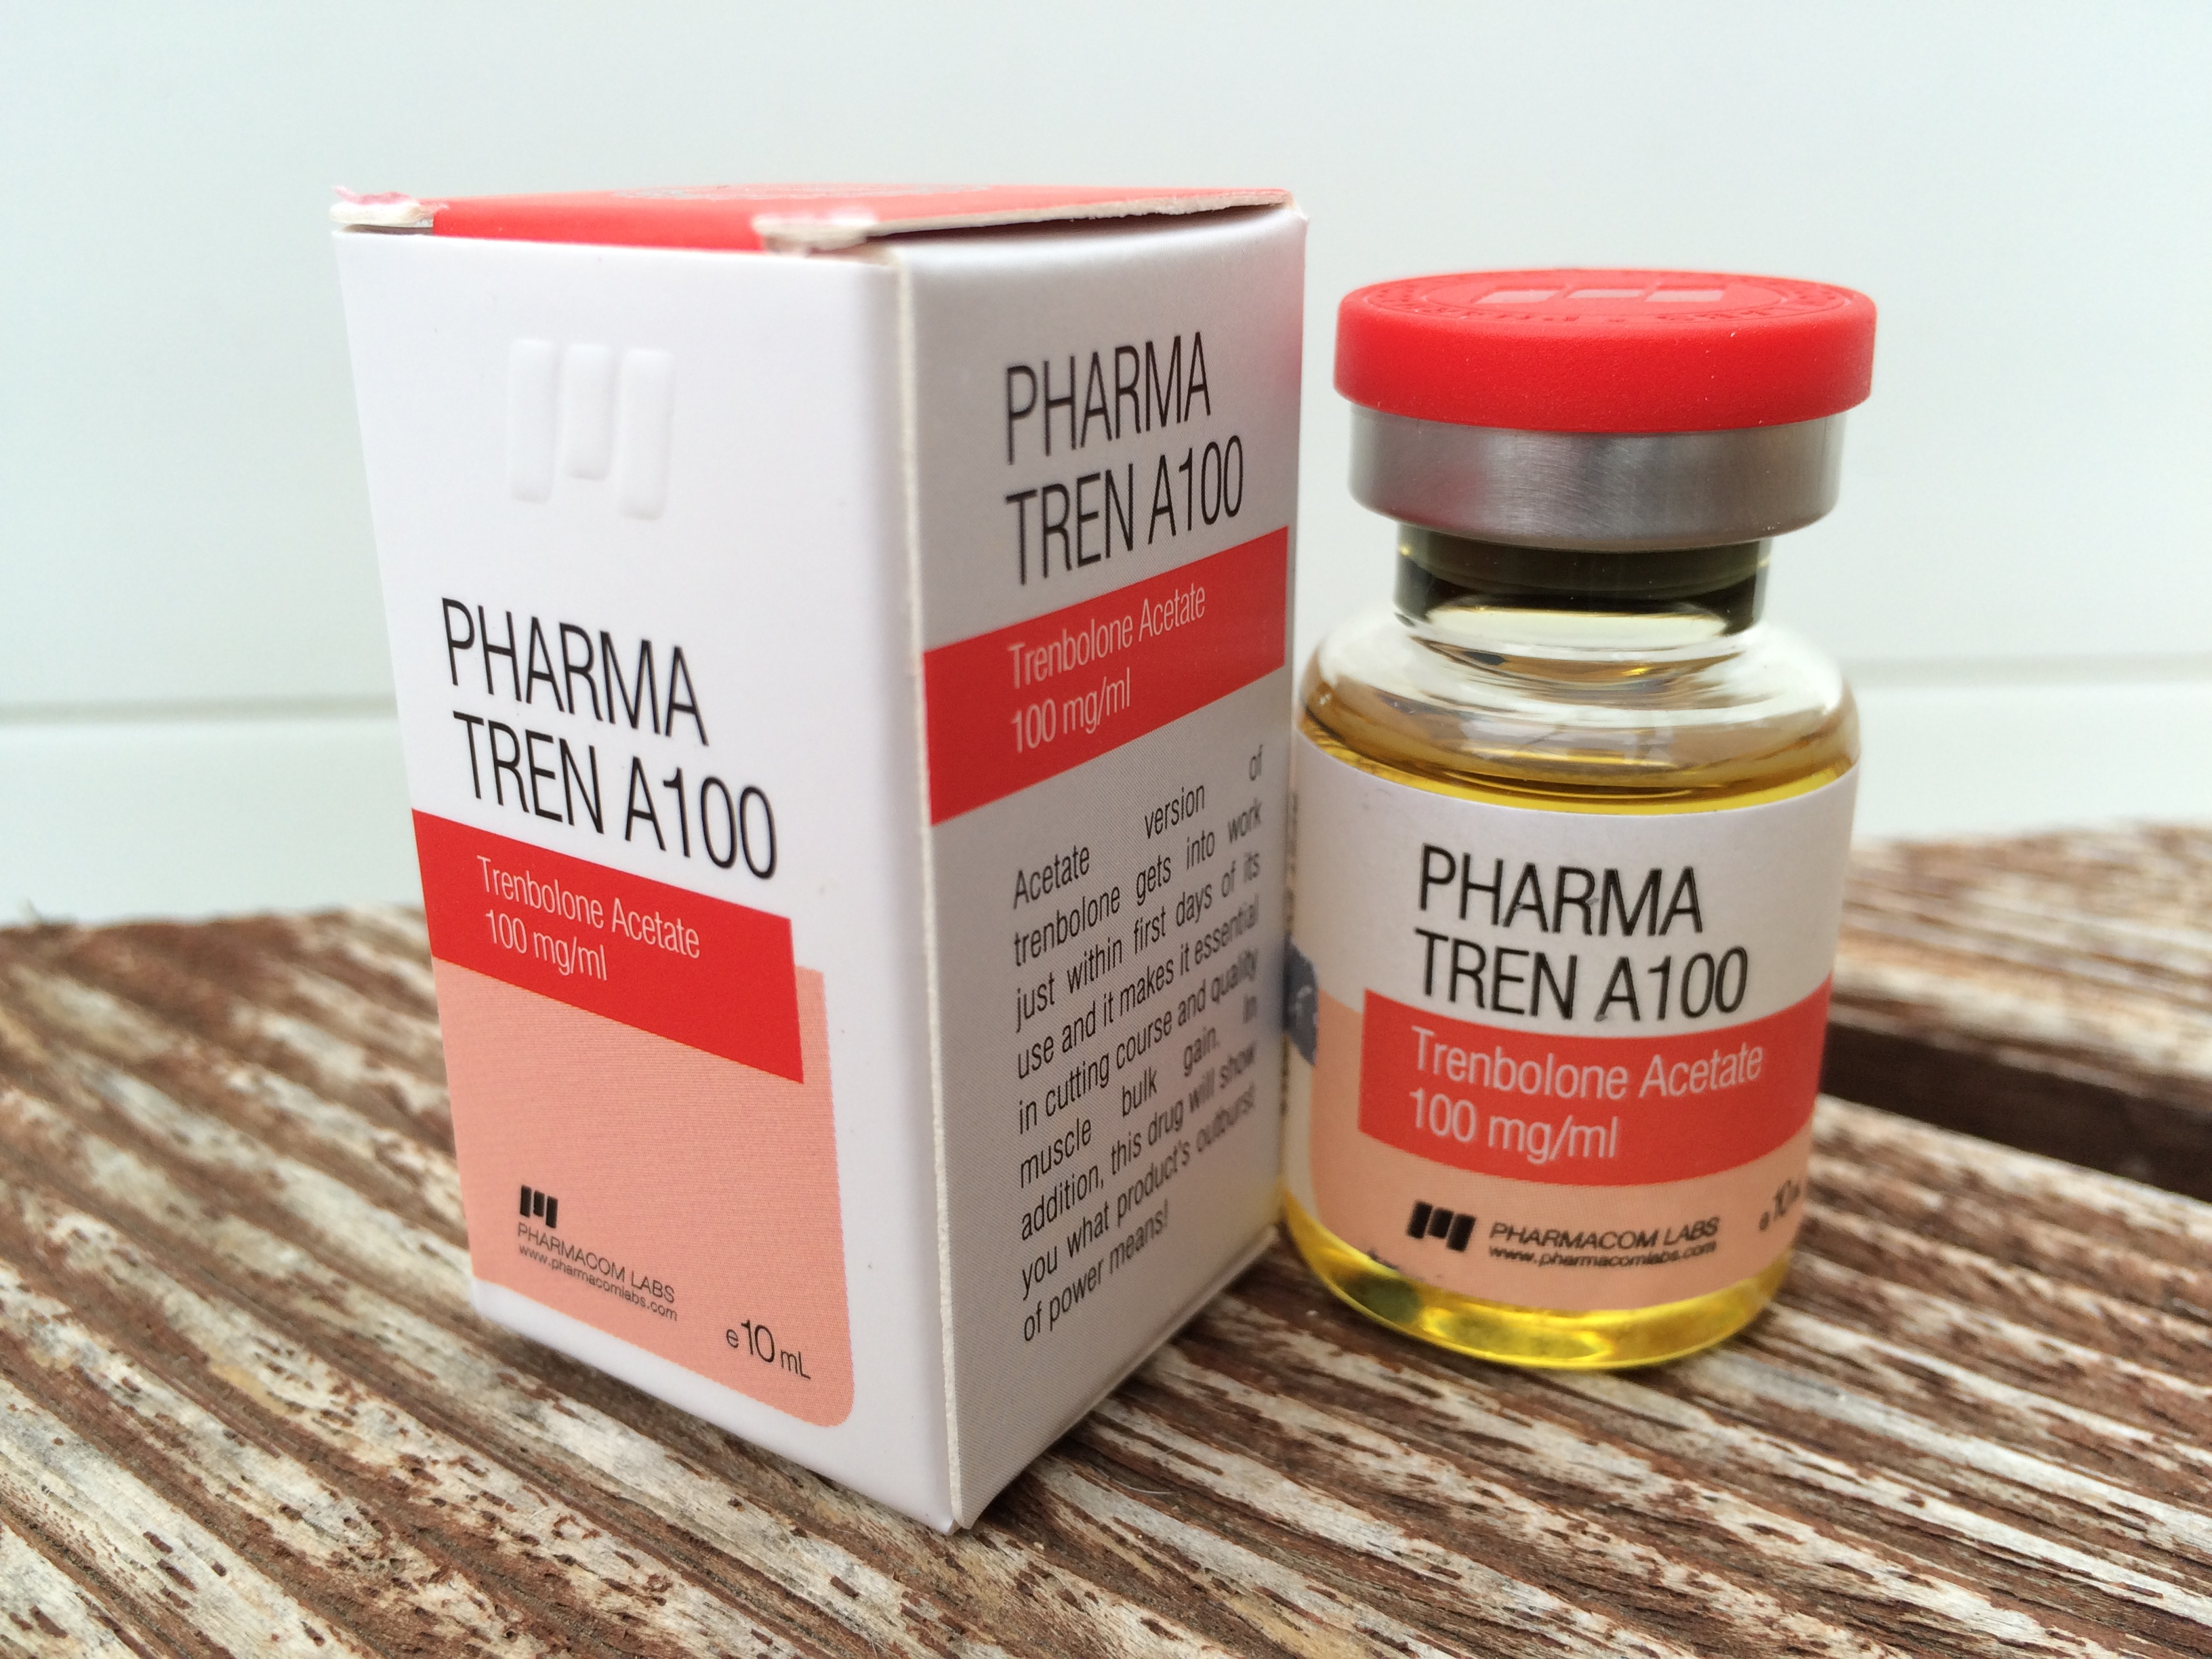 Pharmacom Labs PHARMA Tren A100 Lab Test Results - Anabolic Lab